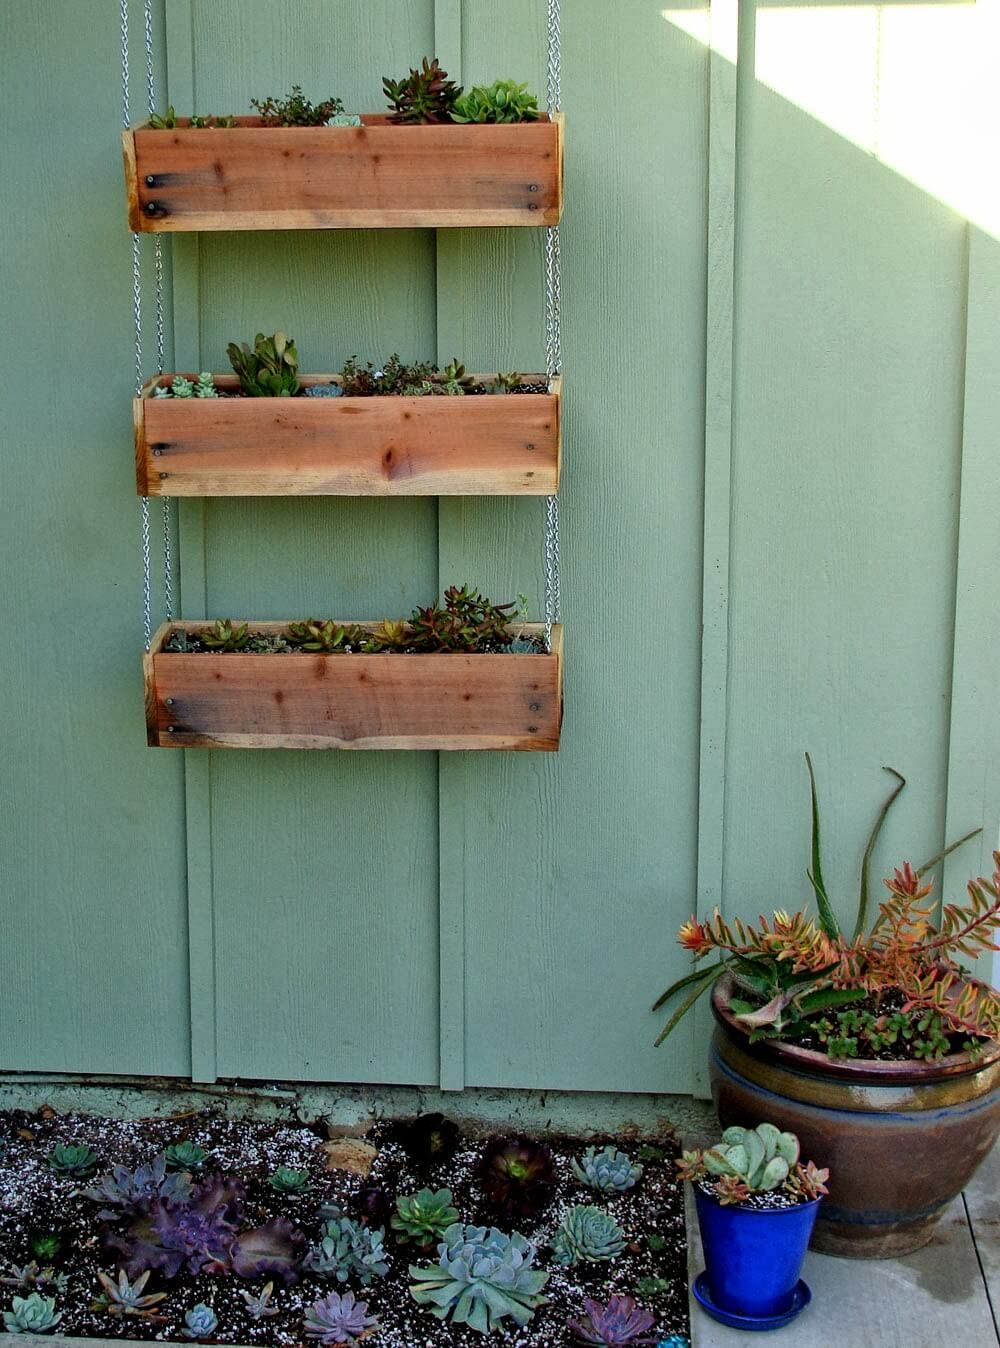 32 diy pallet and wood planter box ideas for your garden on easy diy woodworking projects to decor your home kinds of wooden planters id=69836